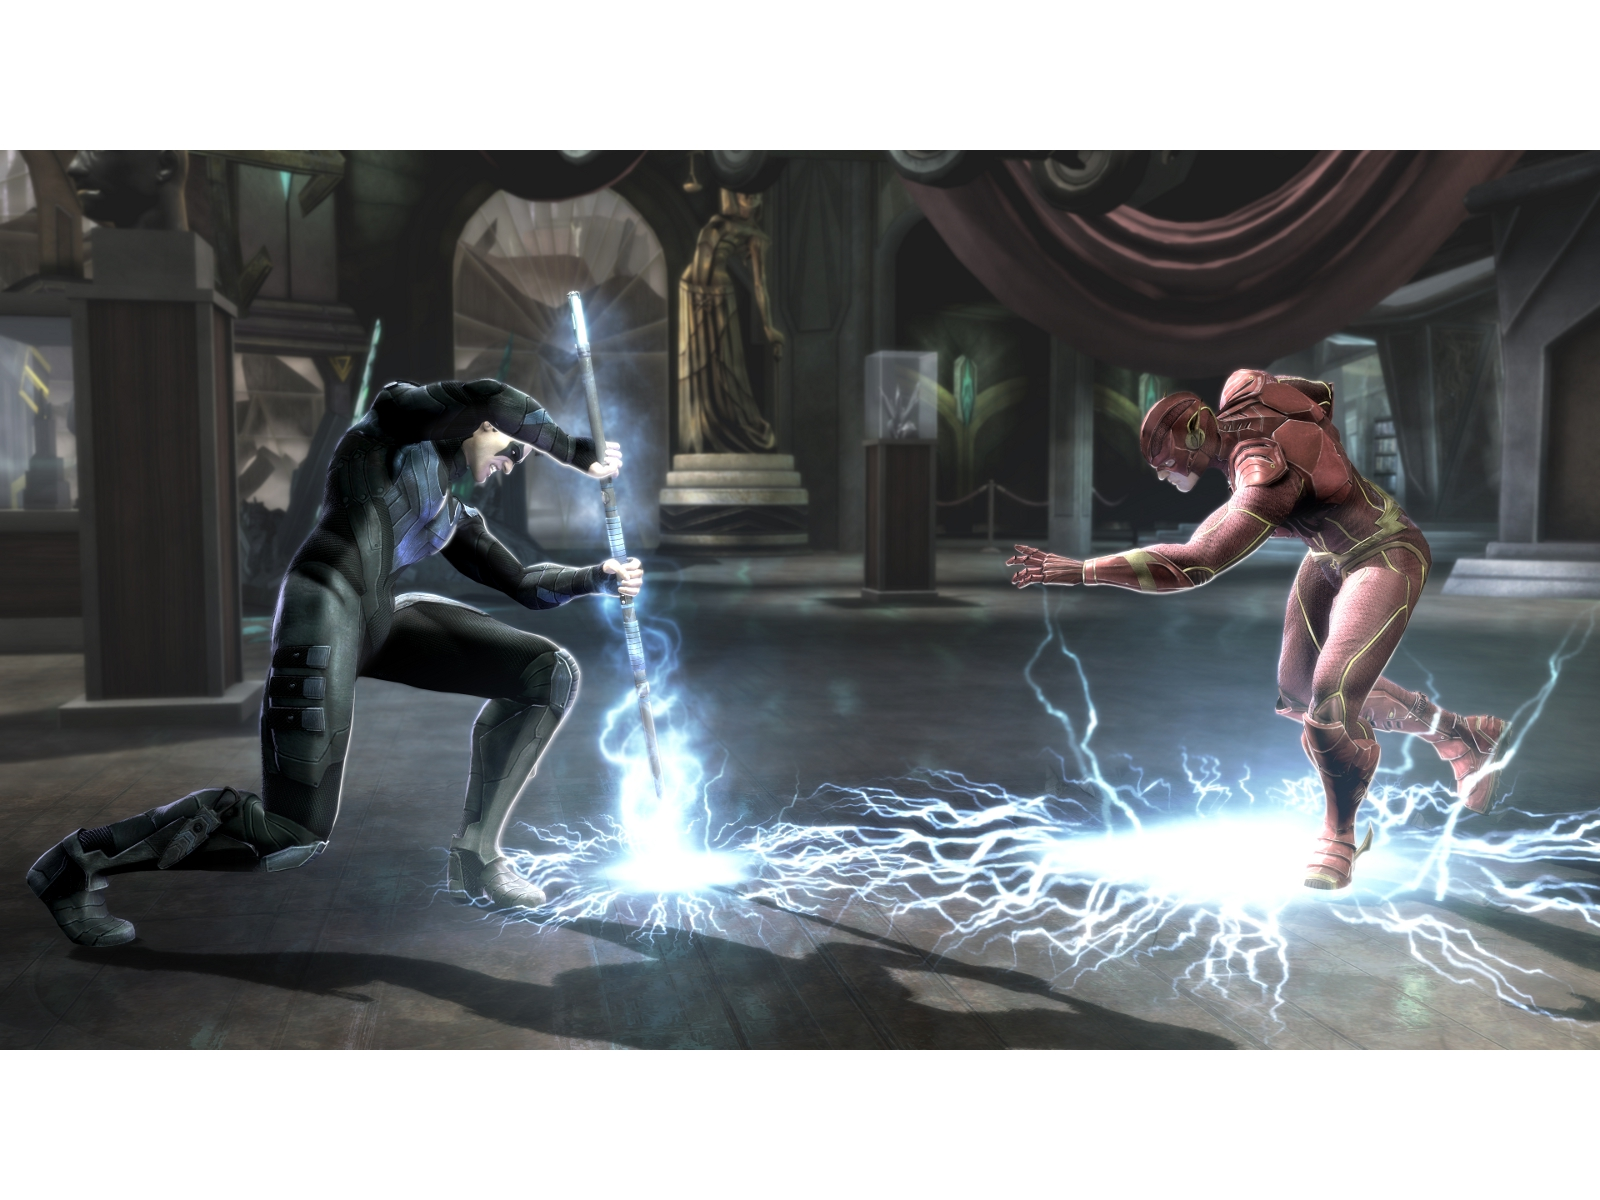 New Screenshots For Injustice: Gods Among Us